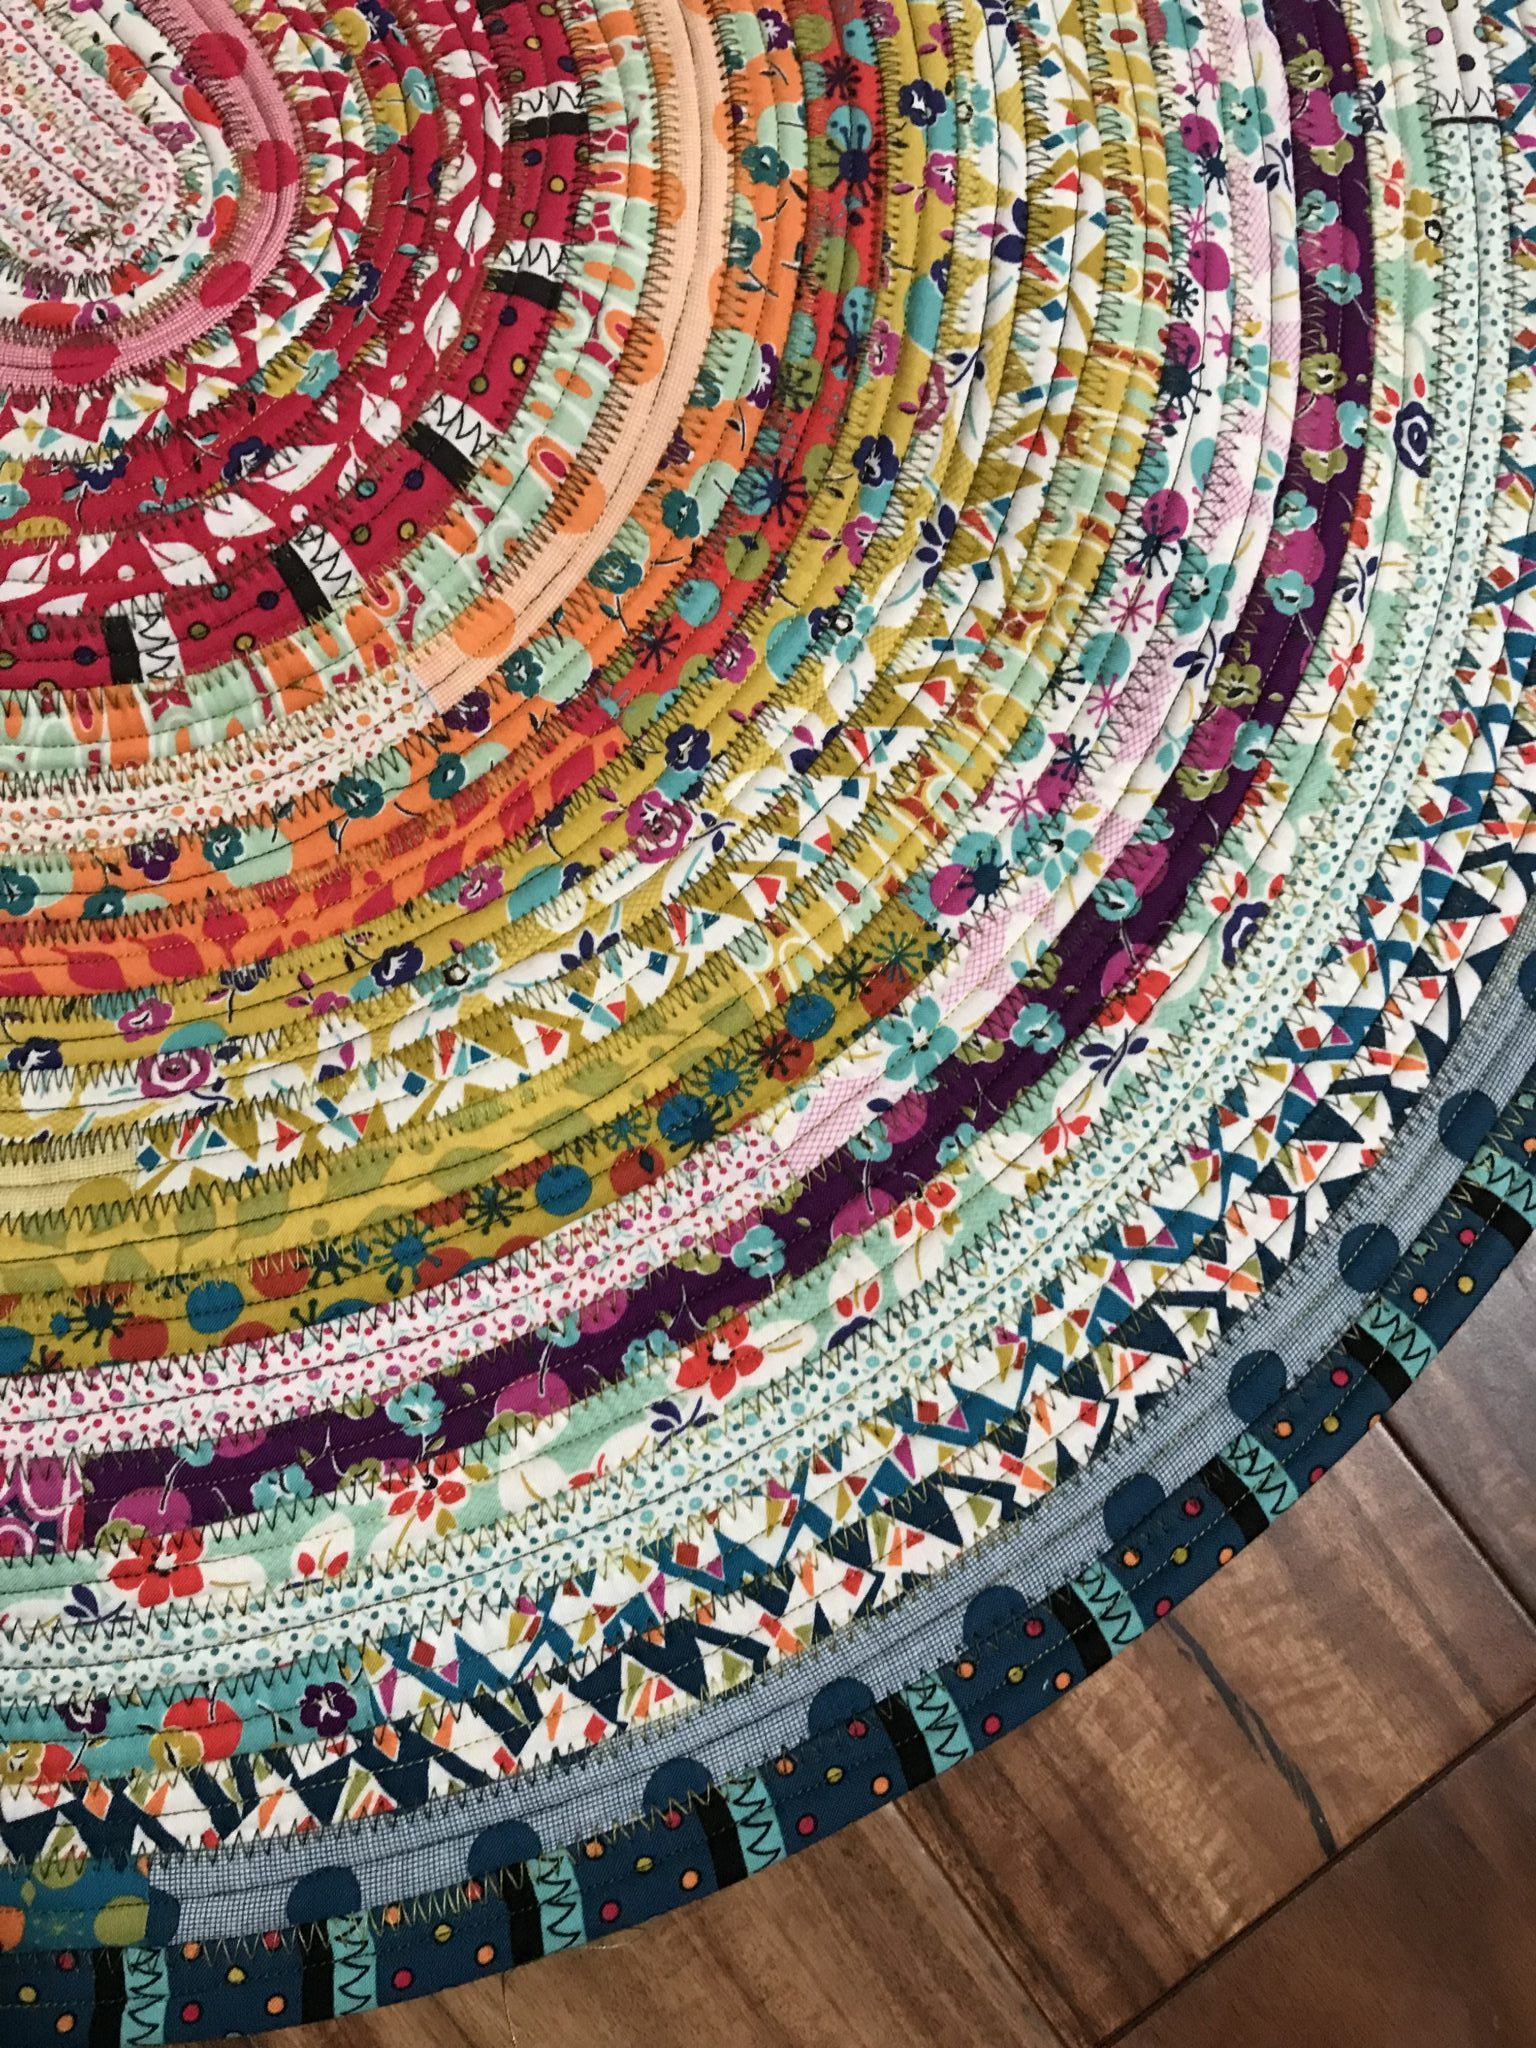 How to Make a Jelly Roll Rug Fabric scraps Sewing